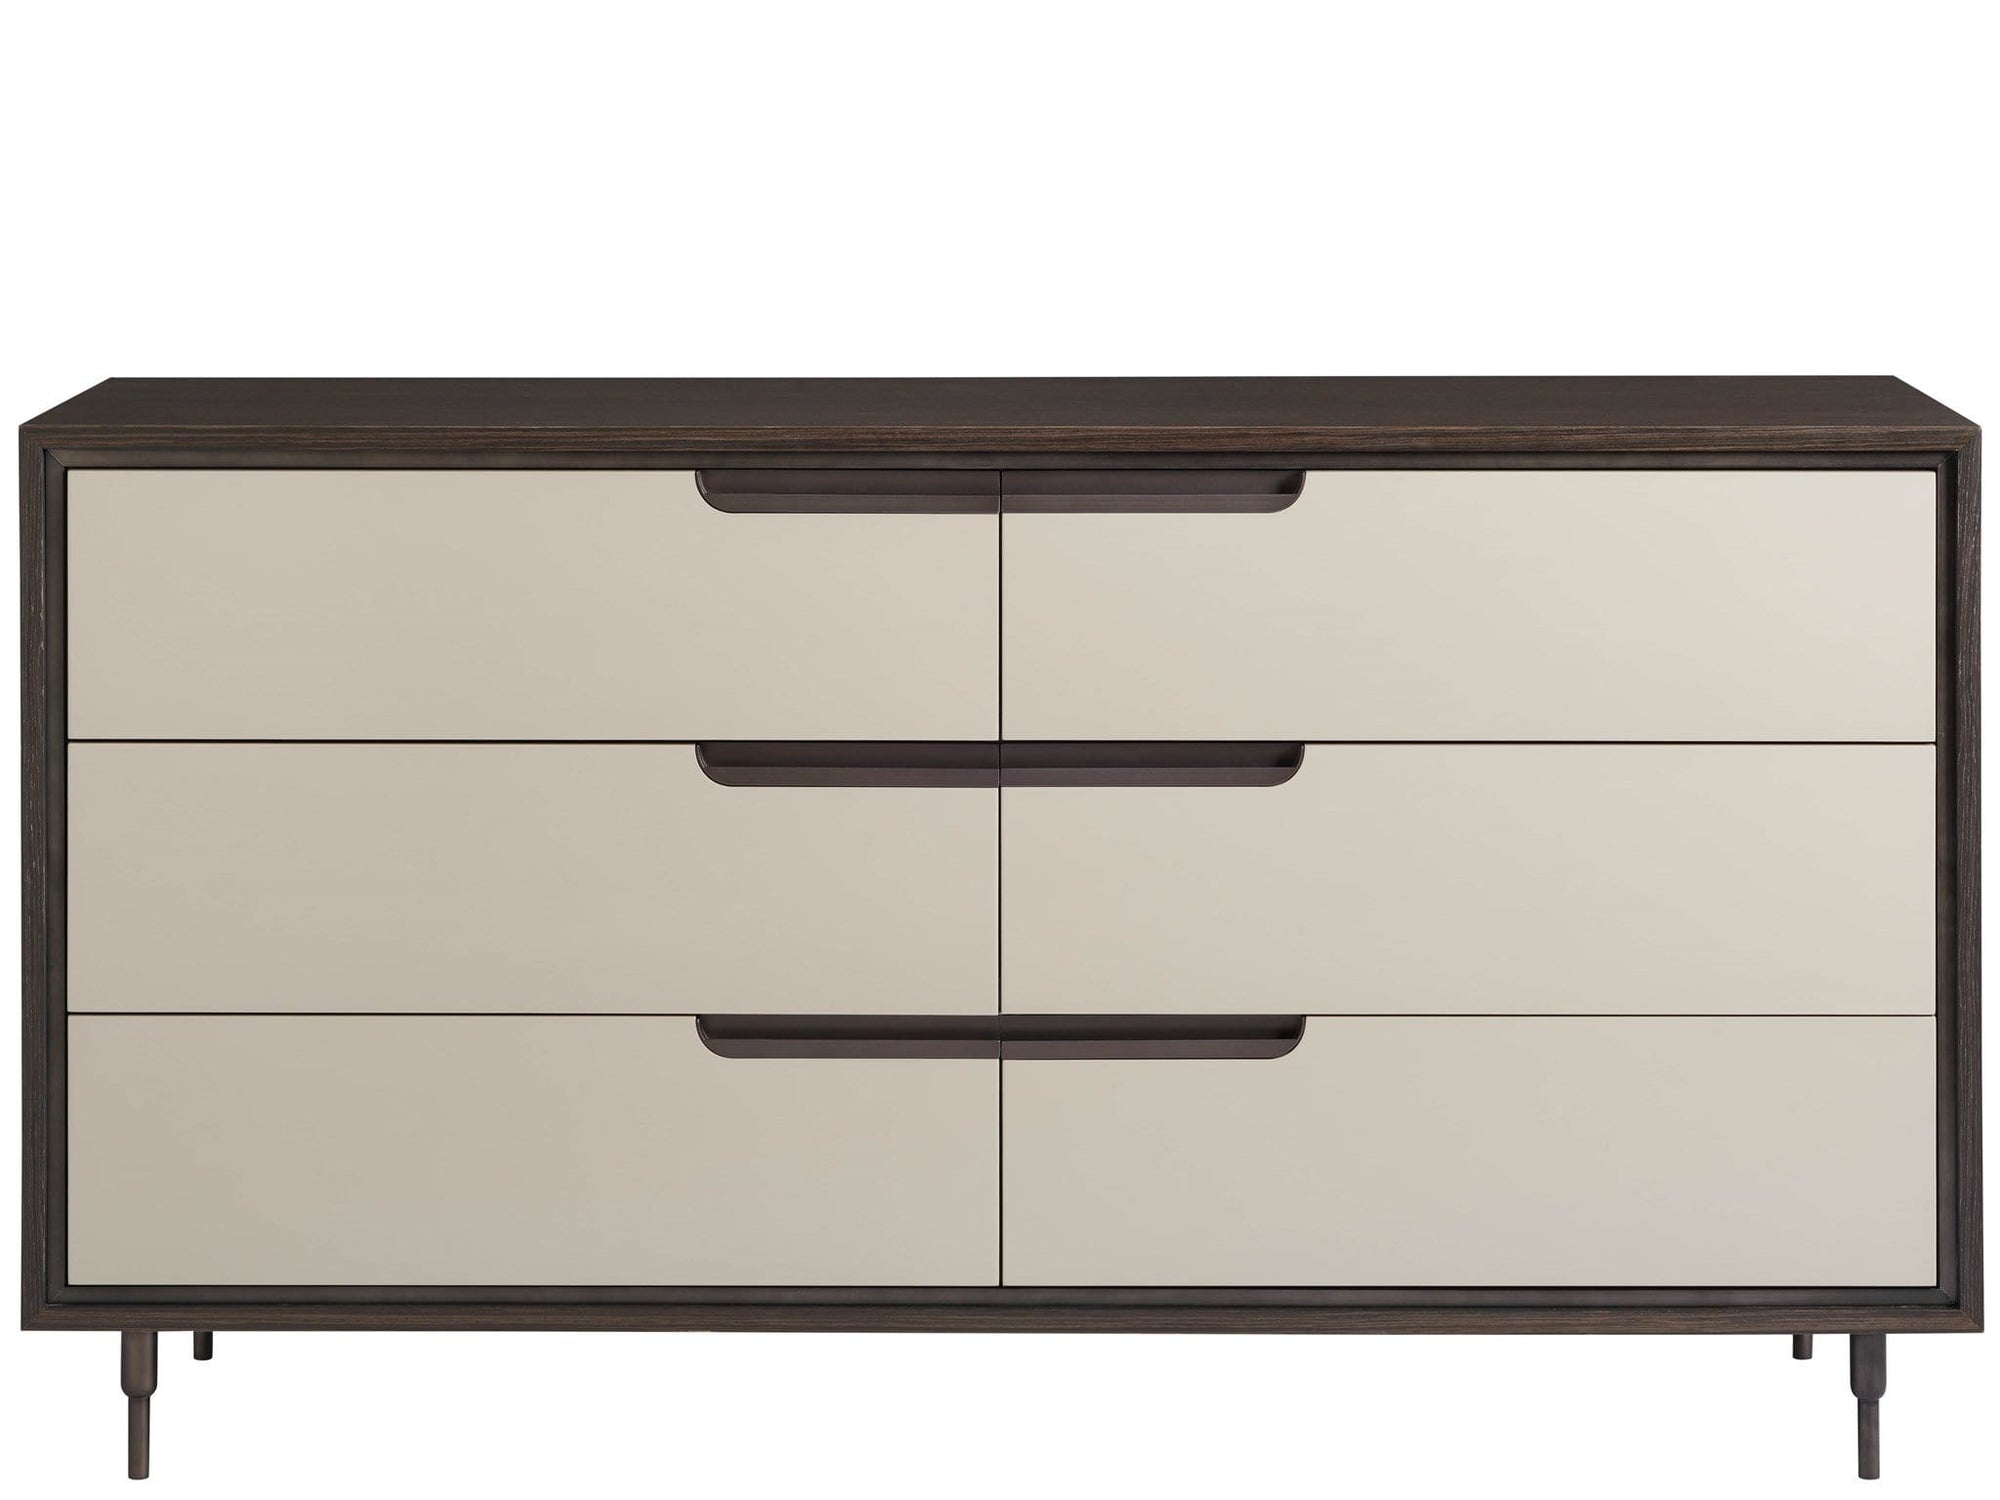 Alchemy Living Alchemy Living Urbain Moscow Dresser - Beige and Brown 807223